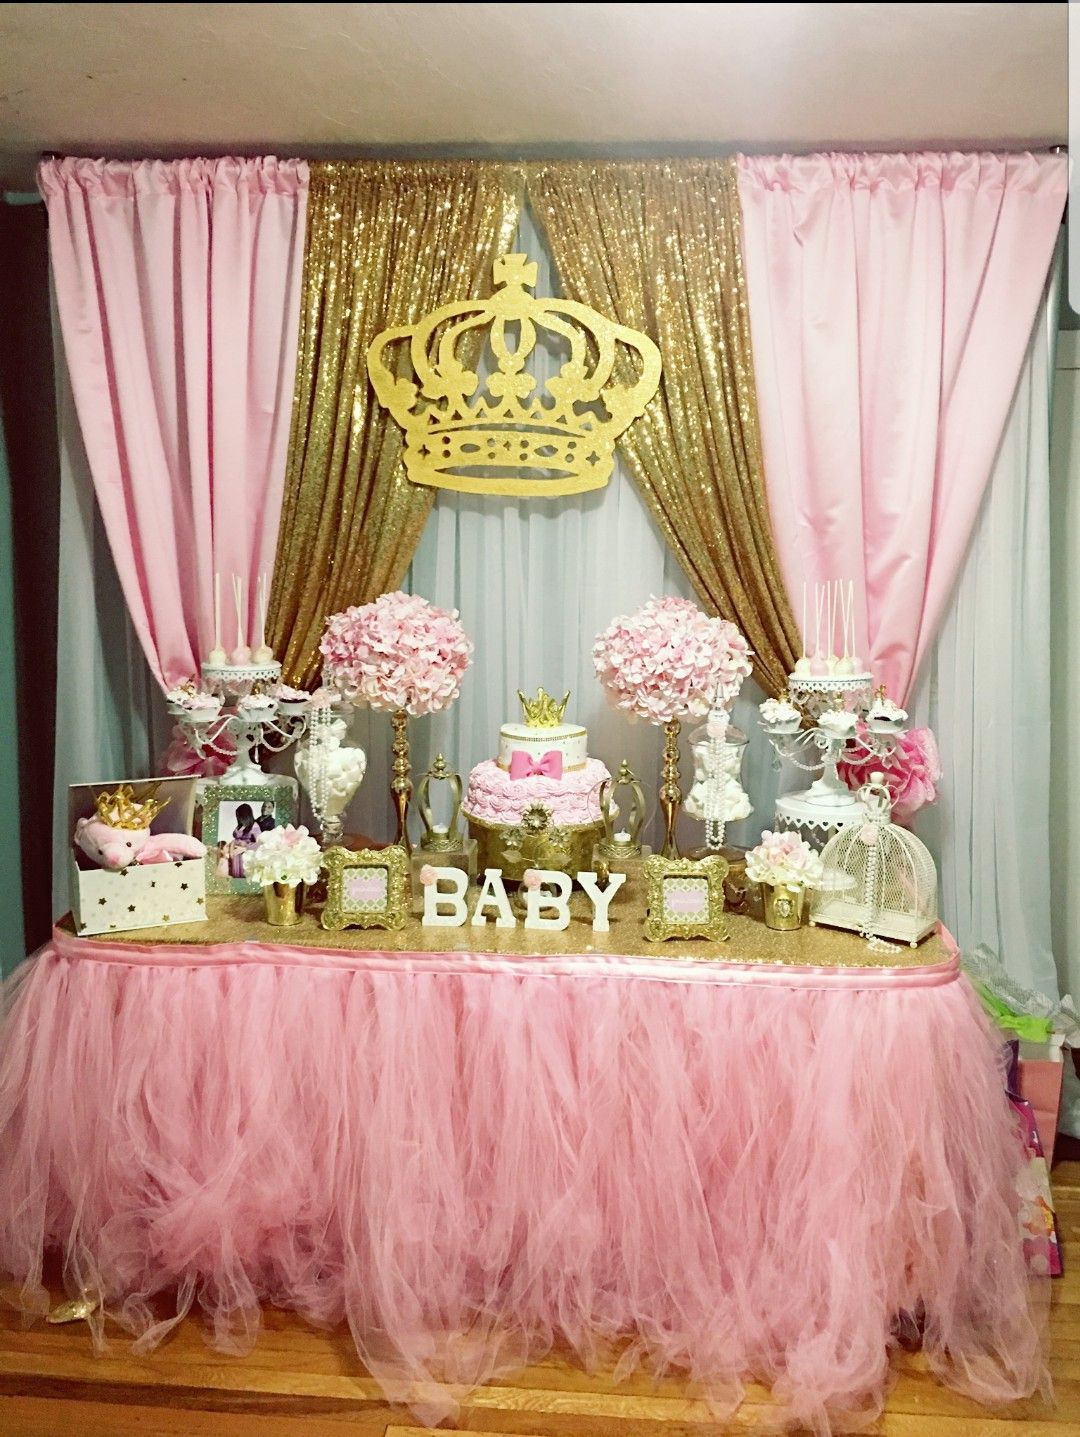 Pin By Chary Bey On Baby Showers Ideas Baby Shower Princess